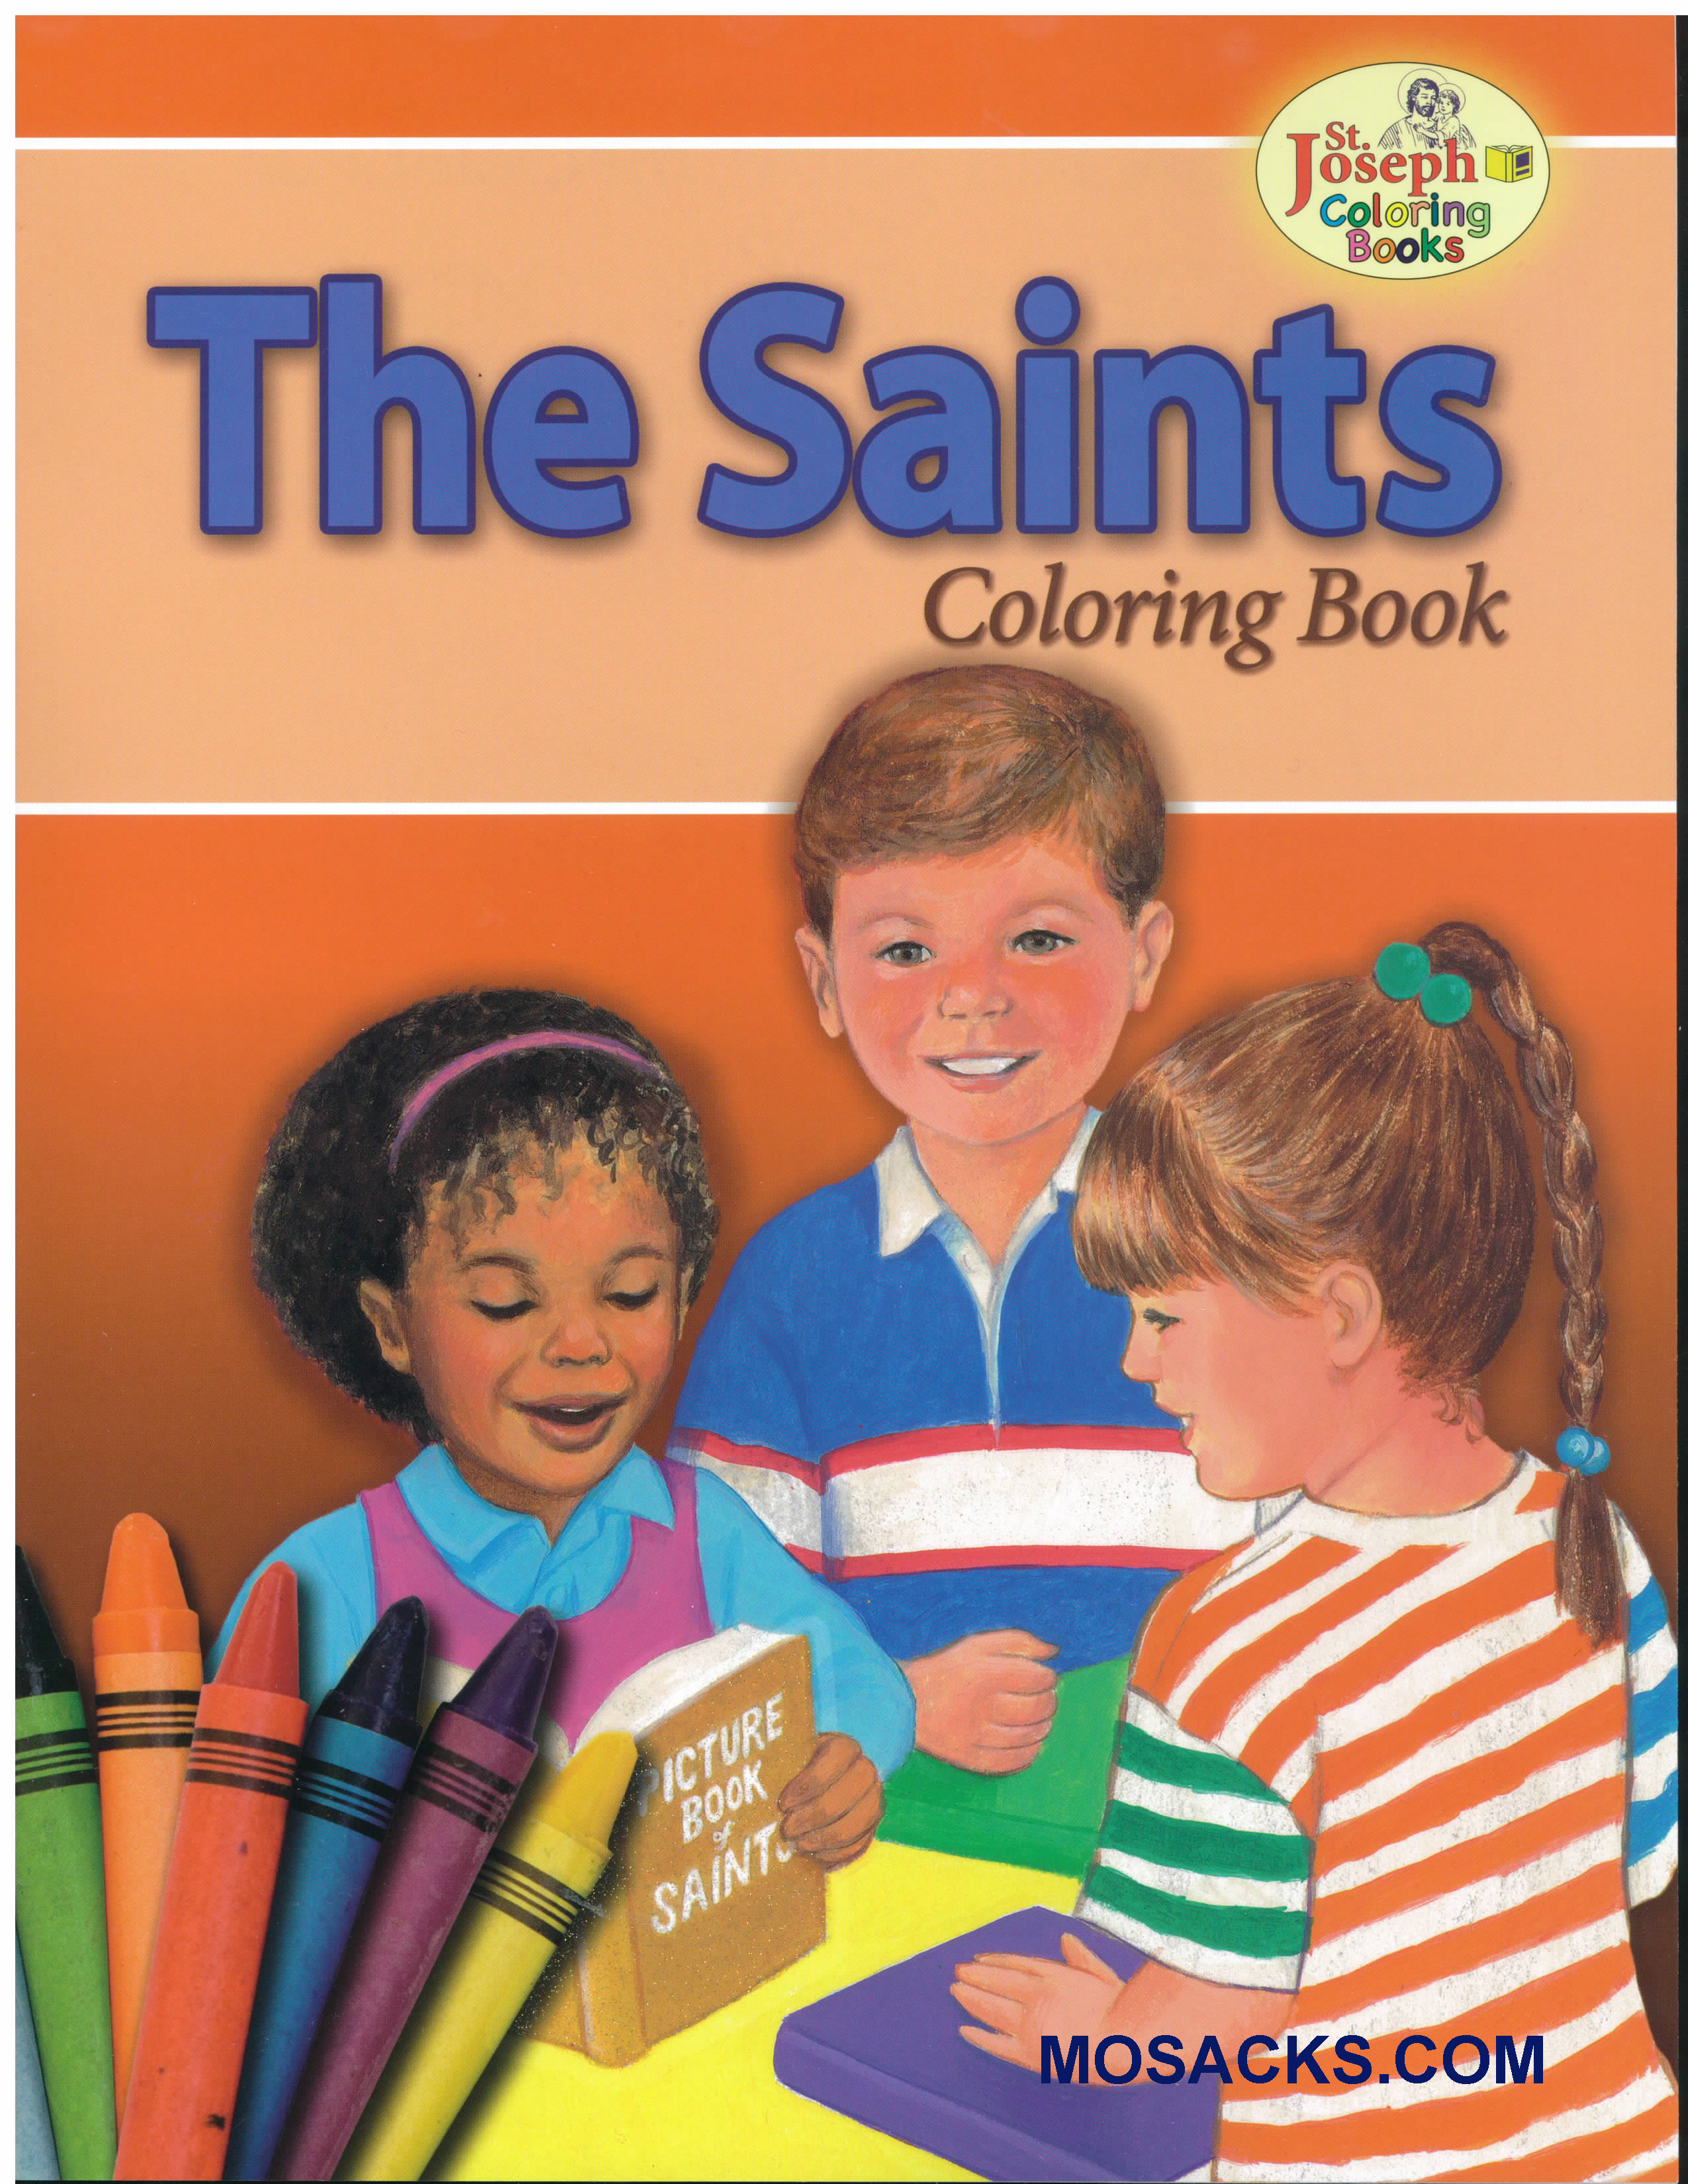 Coloring Book About The Saints-978089942681-5